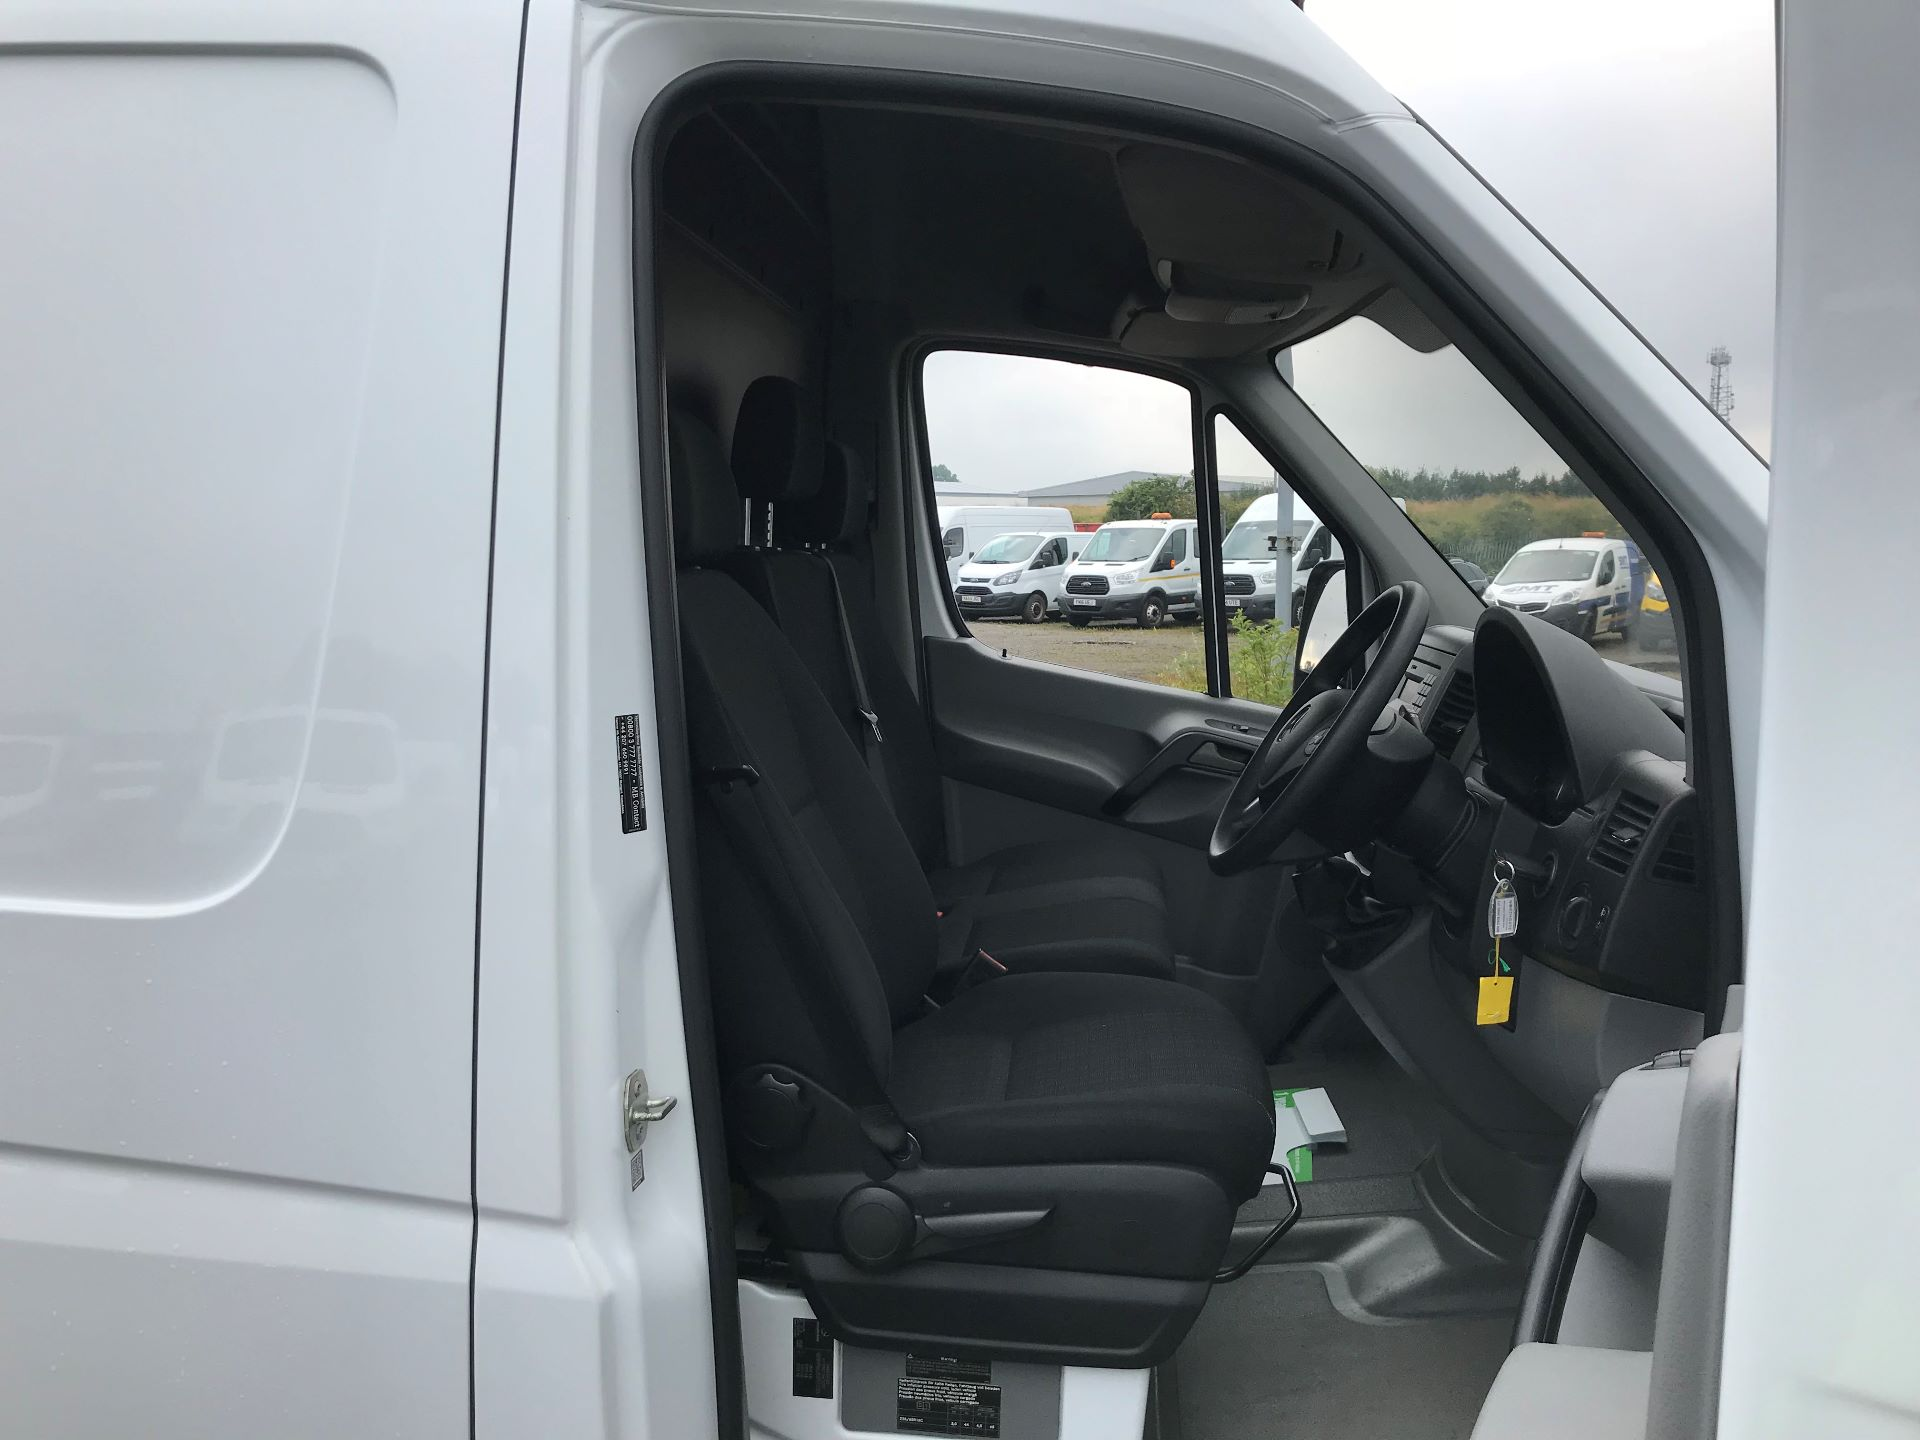 2017 Mercedes-Benz Sprinter 3.5T High Roof Van (KK17BVH) Image 11